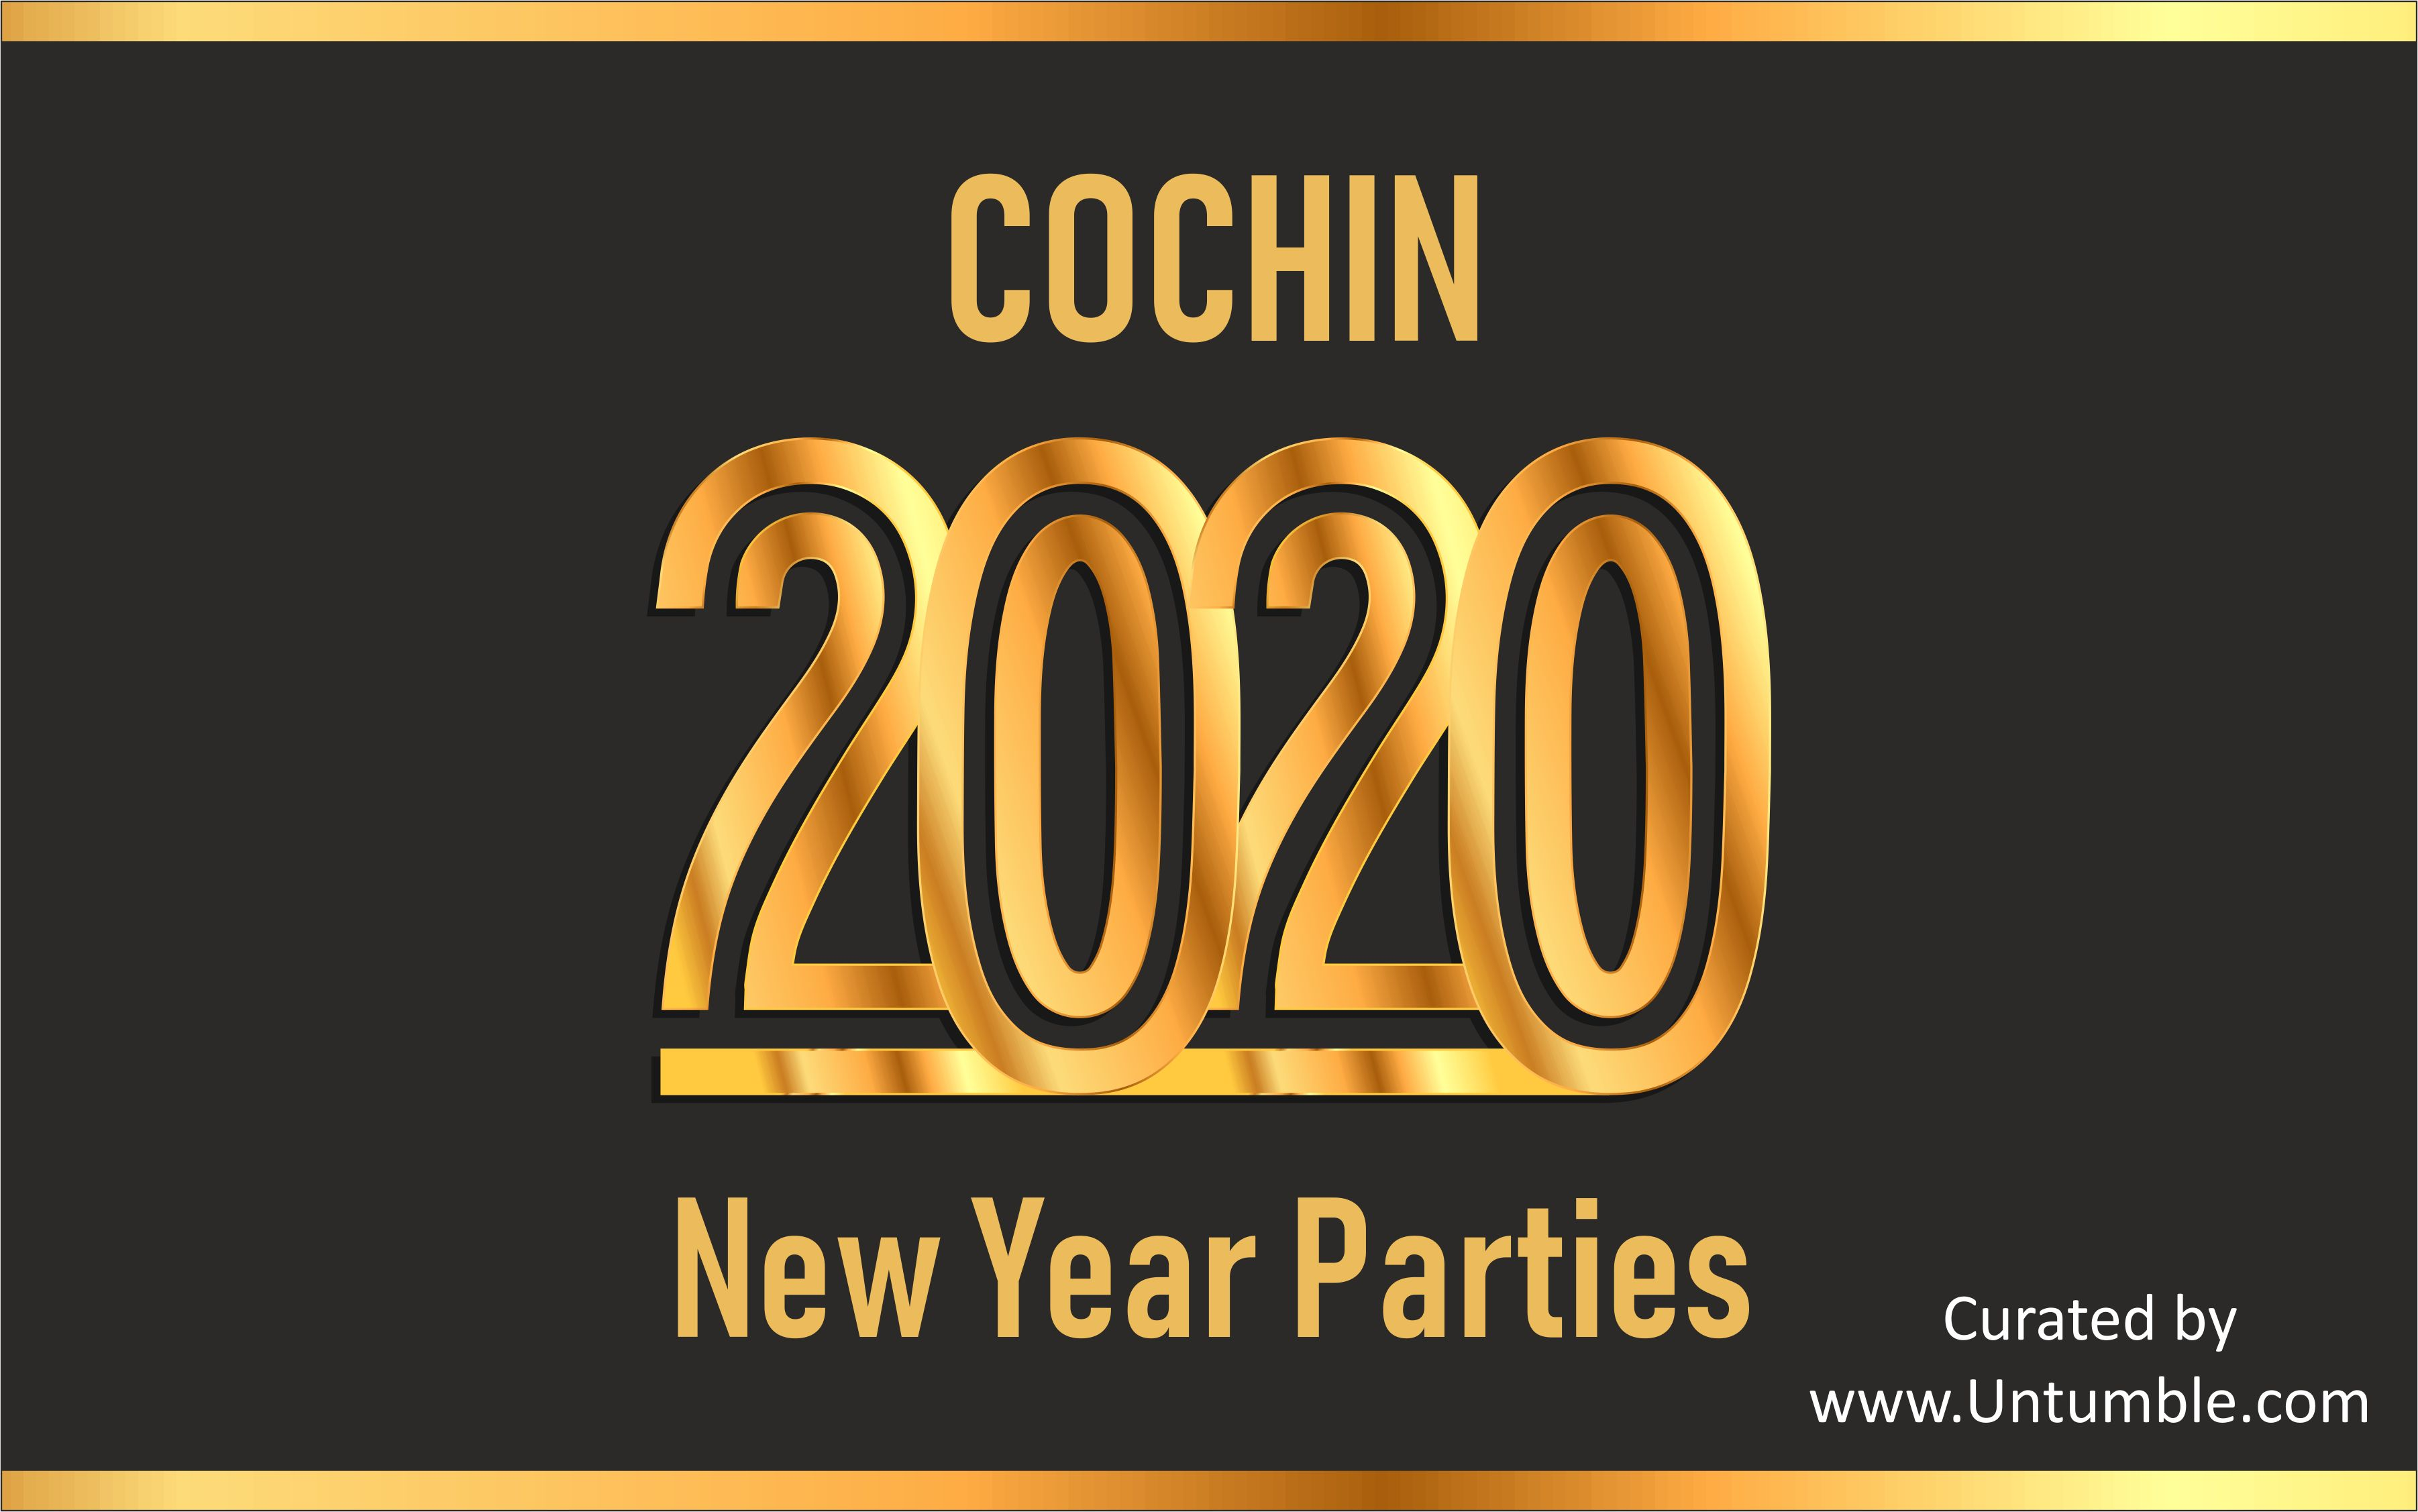 New Year 2020 Parties in Kochi